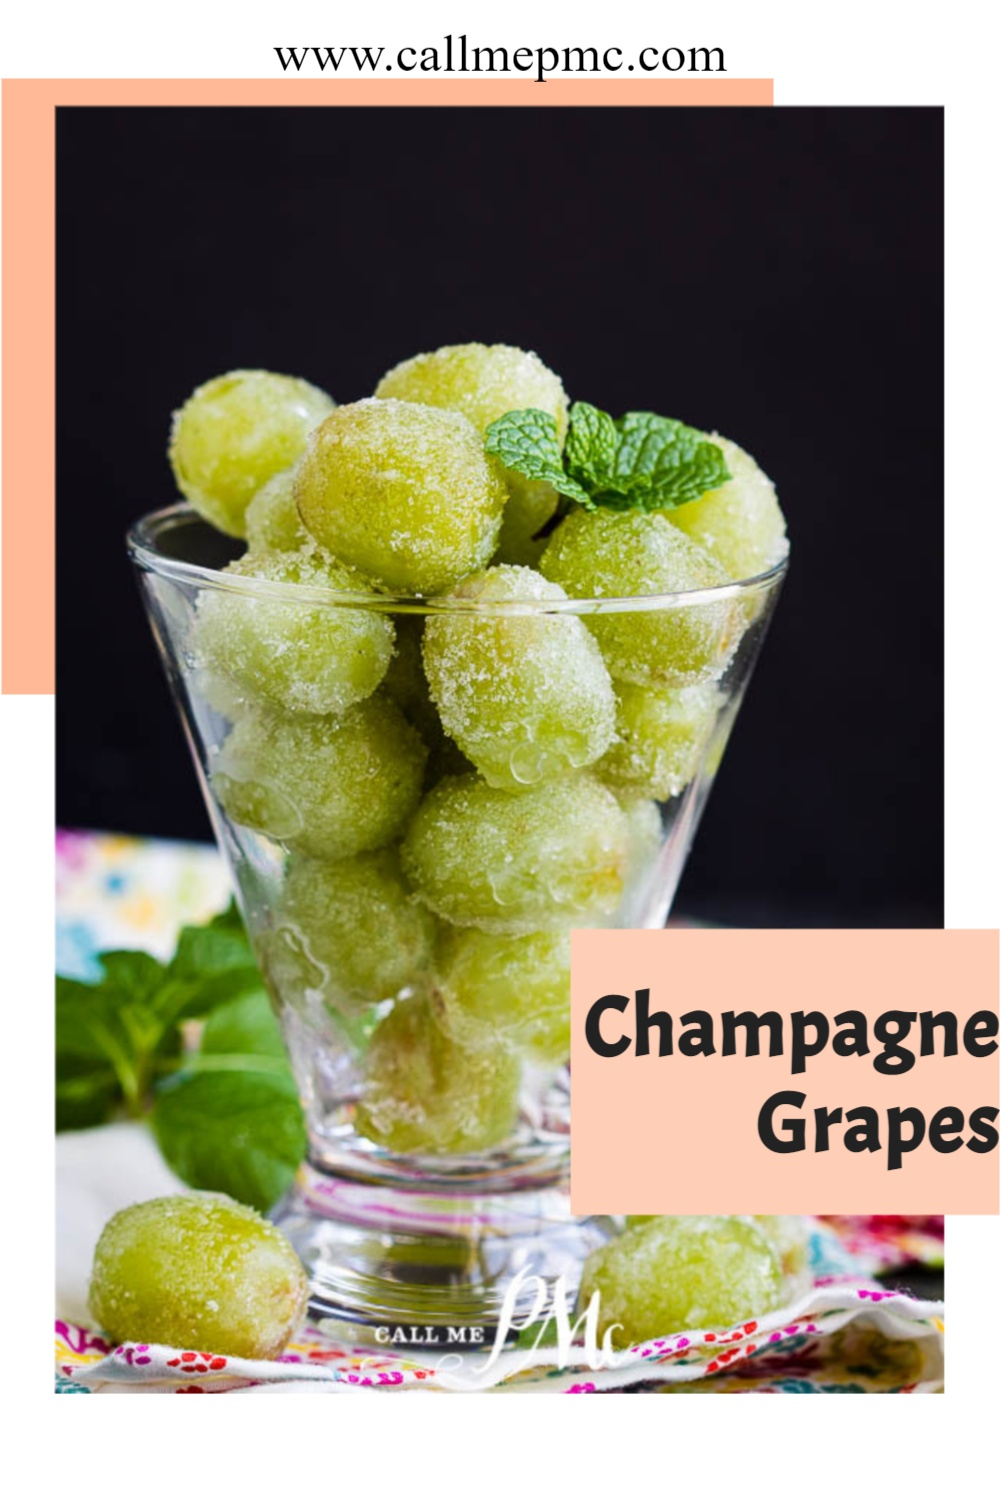 Boozy, sweet, festive, fun, Sugar Champagne Grapes is a tasty treat for any celebration. aka Drunken or Boozy grapes. Prosecco, rum, tequila #booze #grapes #champagne #recipe #callmepmc